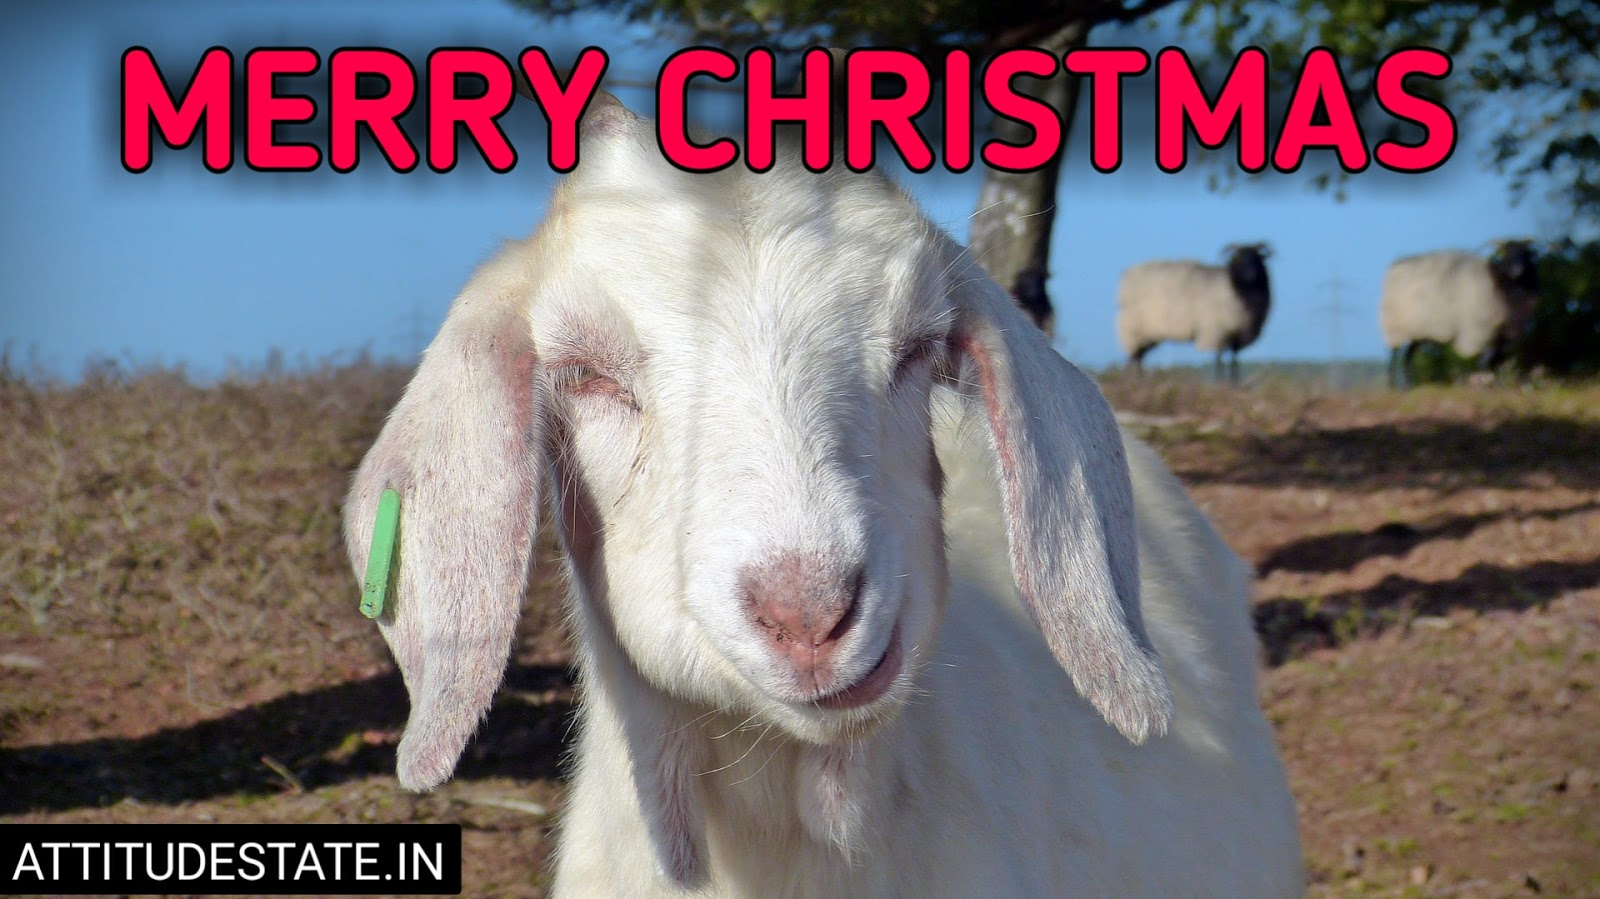 funny merry christmas moving images